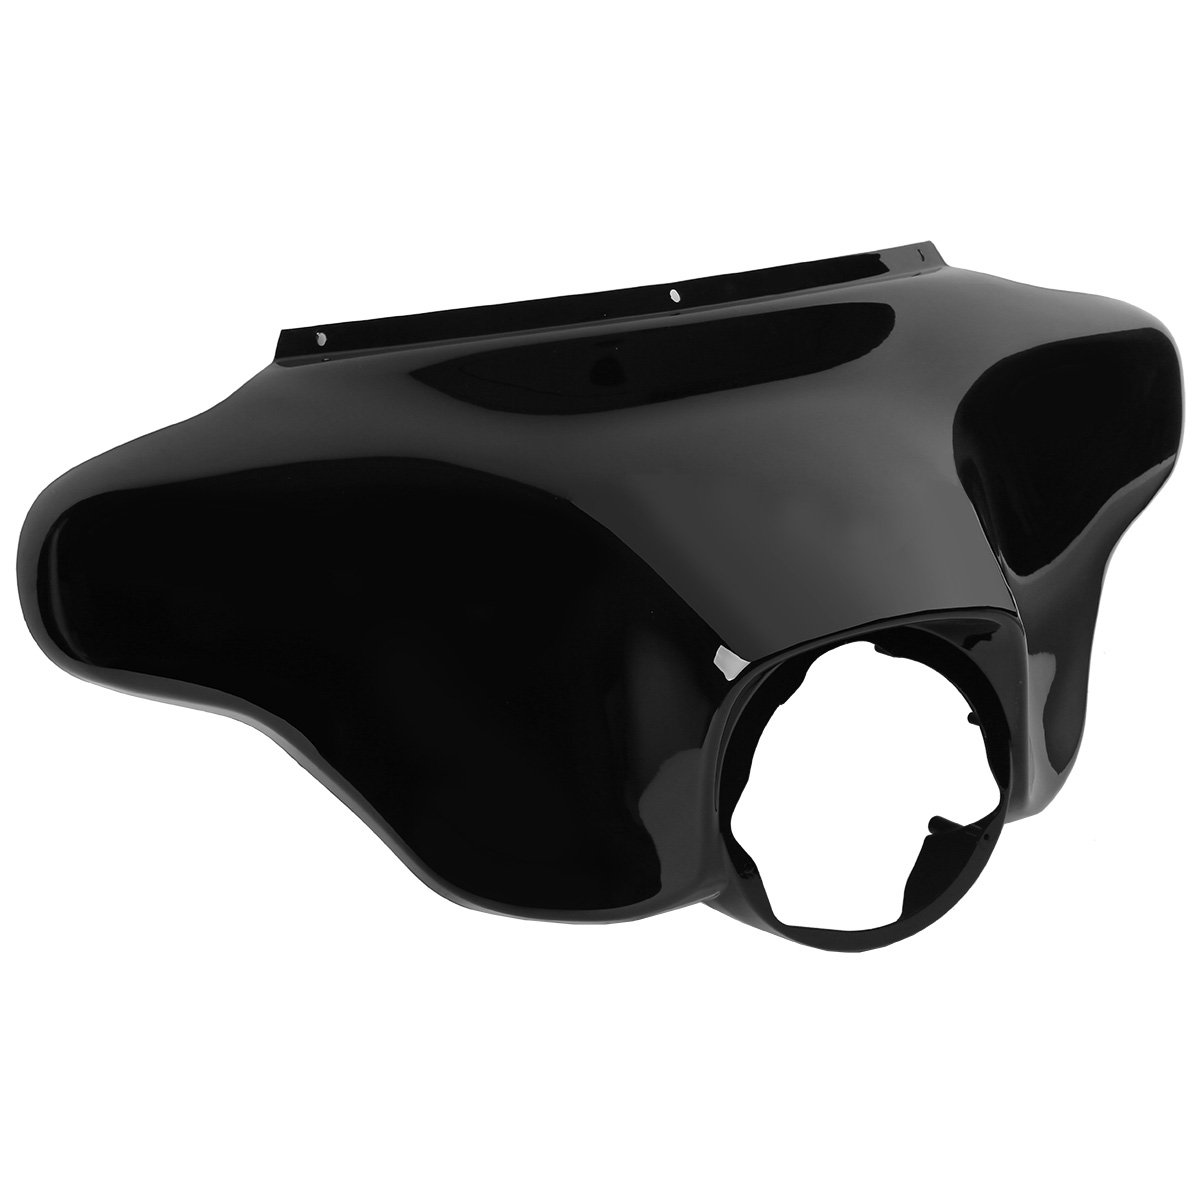 Black Speedometer Cover Inner Fairing for Electra Street Glide Road King Speedometer Cover 1996-2013